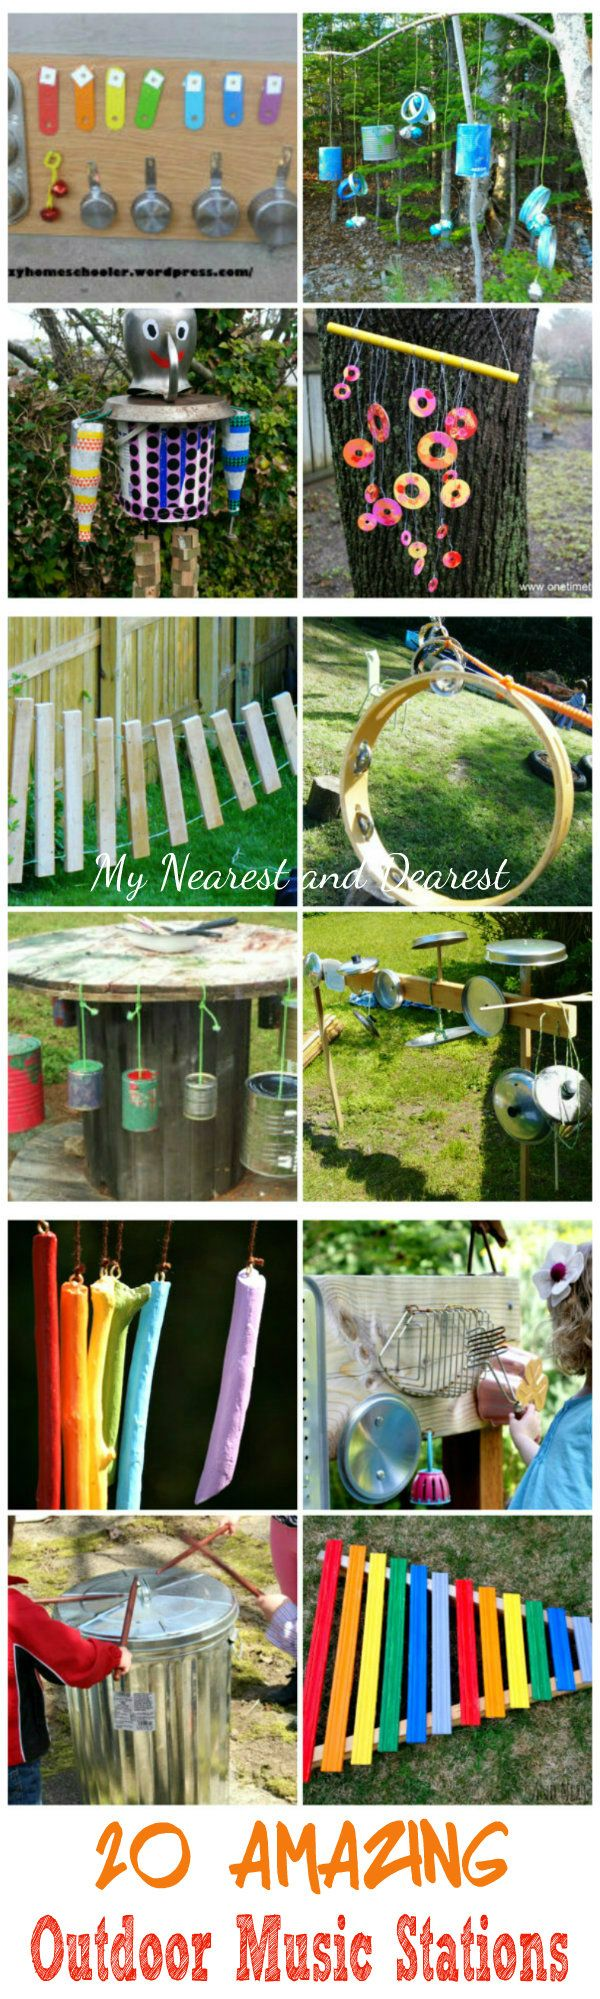 20 Amazing Outdoor Music Stations. From wind chimes, to banging walls, to a cool music man this post has SO much inspiration. #kids #outdoors #play